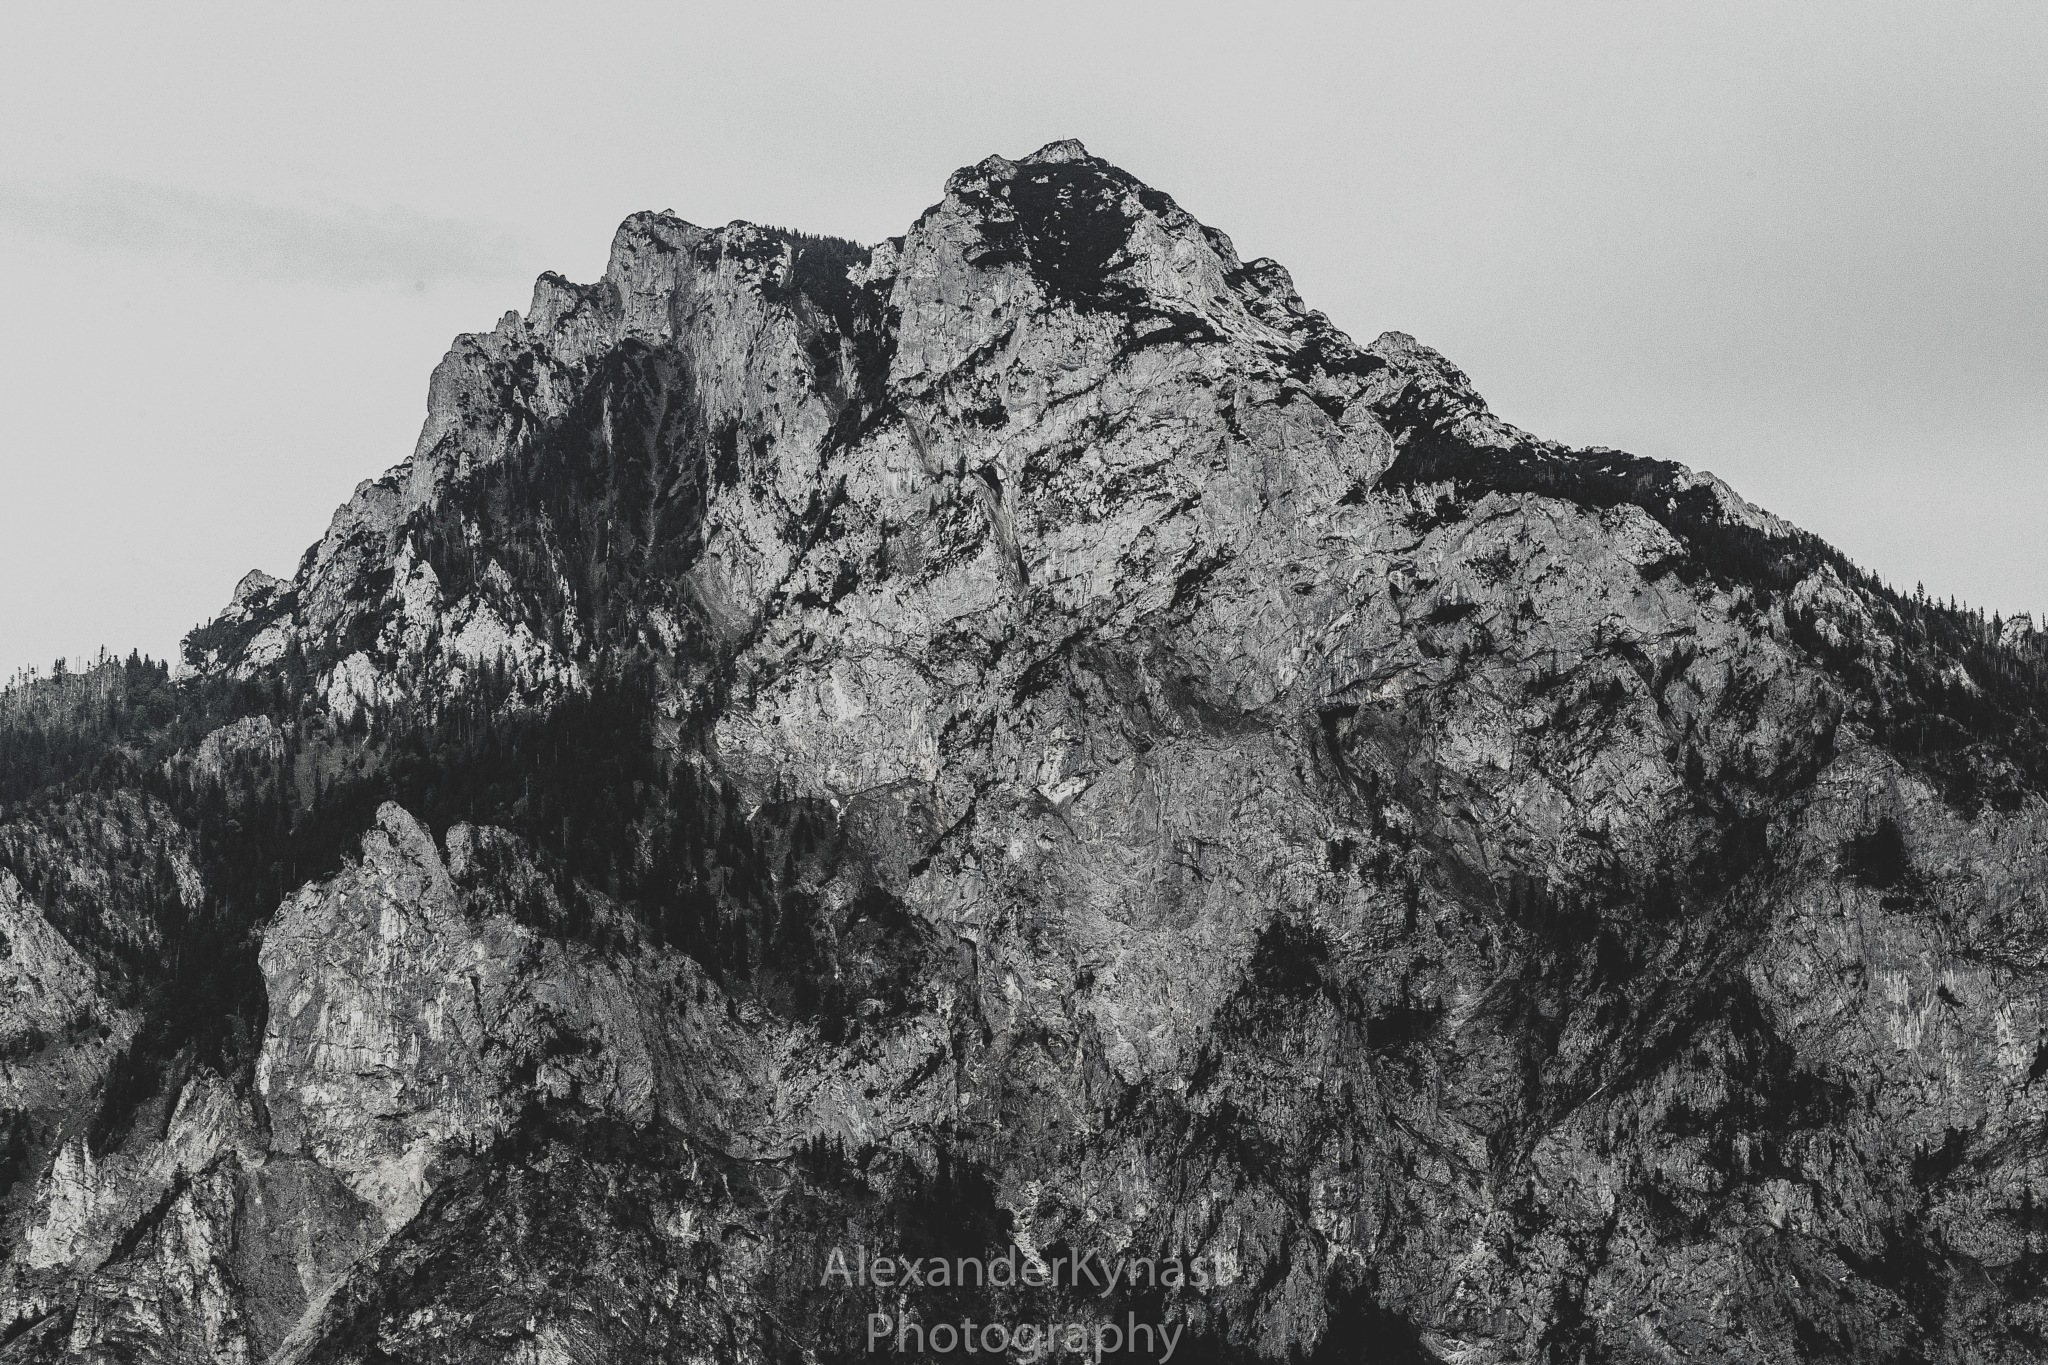 In love with a Mountain by Alexander Kynast